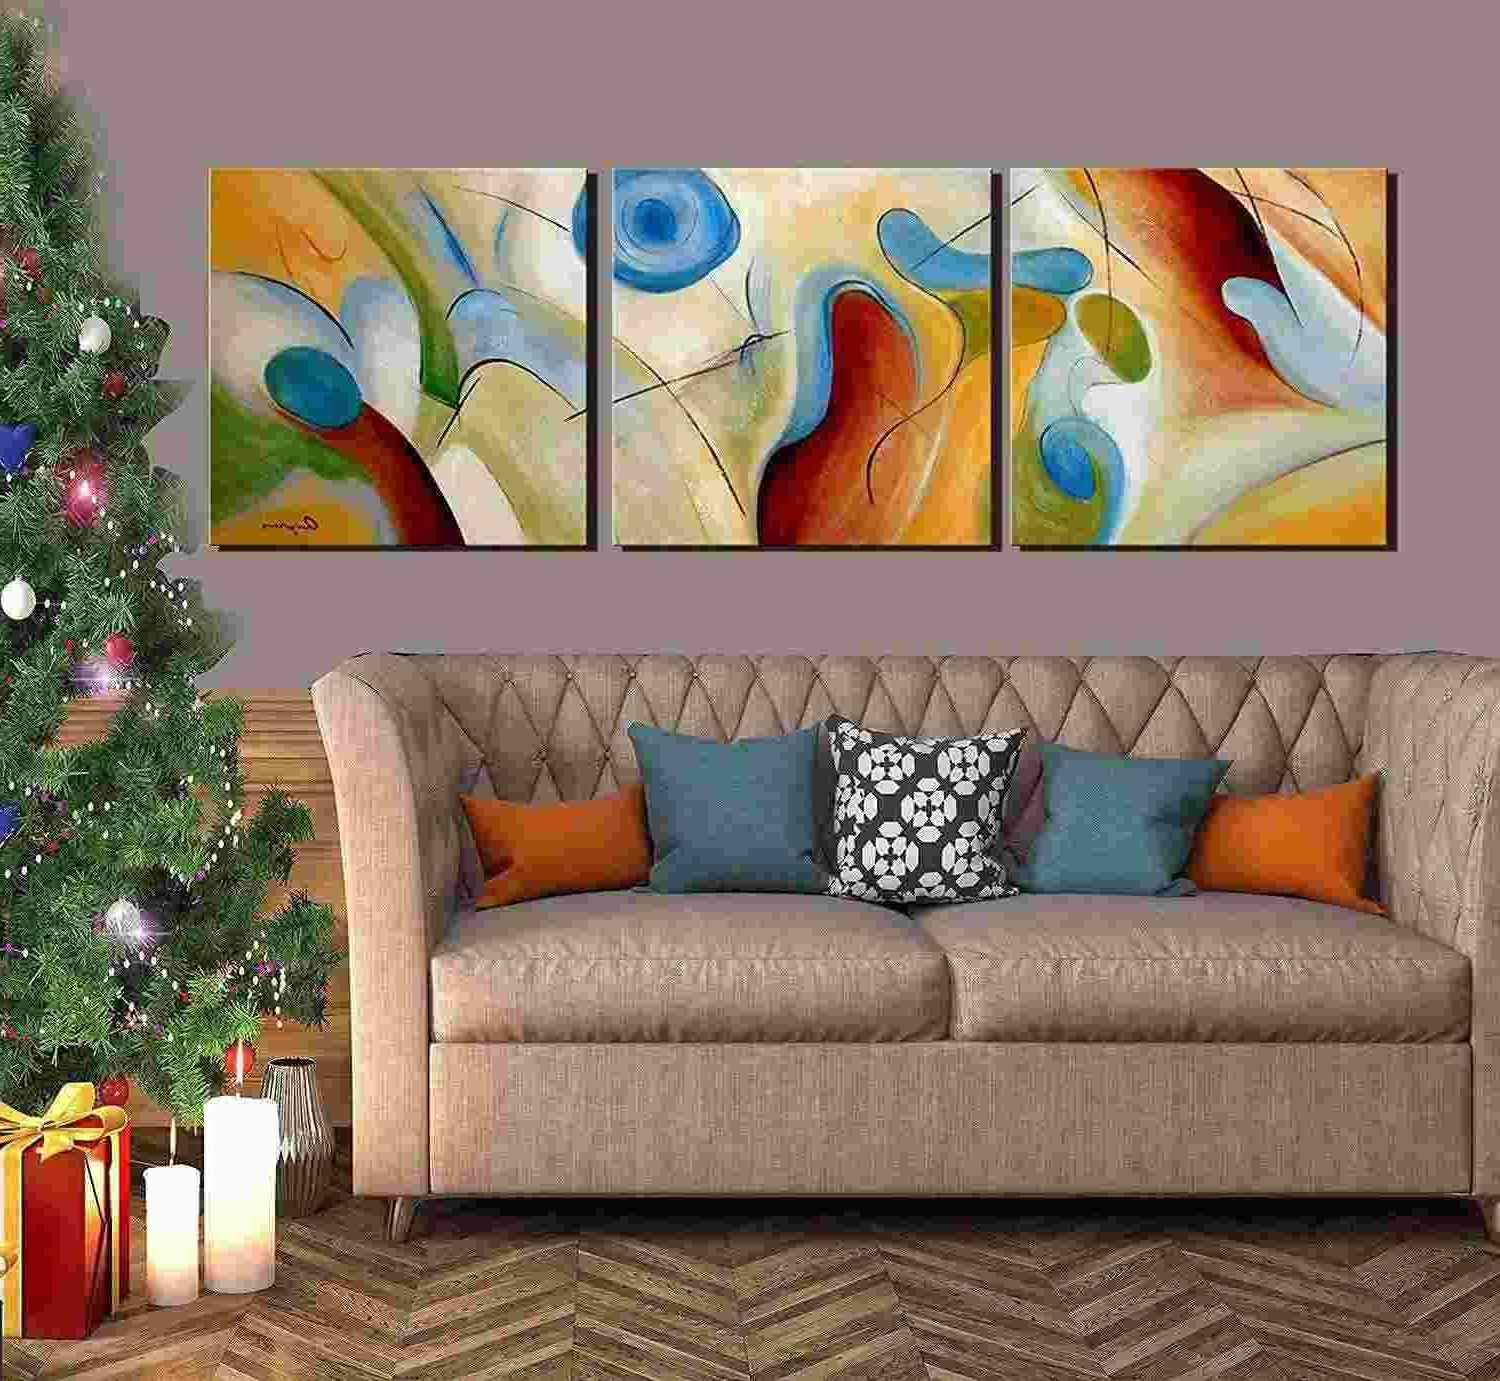 [%2018 100% Hand Painted Abstract Oil Painting On Canvas Dream Intended For Most Popular Abstract Oil Painting Wall Art|Abstract Oil Painting Wall Art With Regard To Most Up To Date 2018 100% Hand Painted Abstract Oil Painting On Canvas Dream|Preferred Abstract Oil Painting Wall Art With 2018 100% Hand Painted Abstract Oil Painting On Canvas Dream|2017 2018 100% Hand Painted Abstract Oil Painting On Canvas Dream With Abstract Oil Painting Wall Art%] (View 4 of 15)